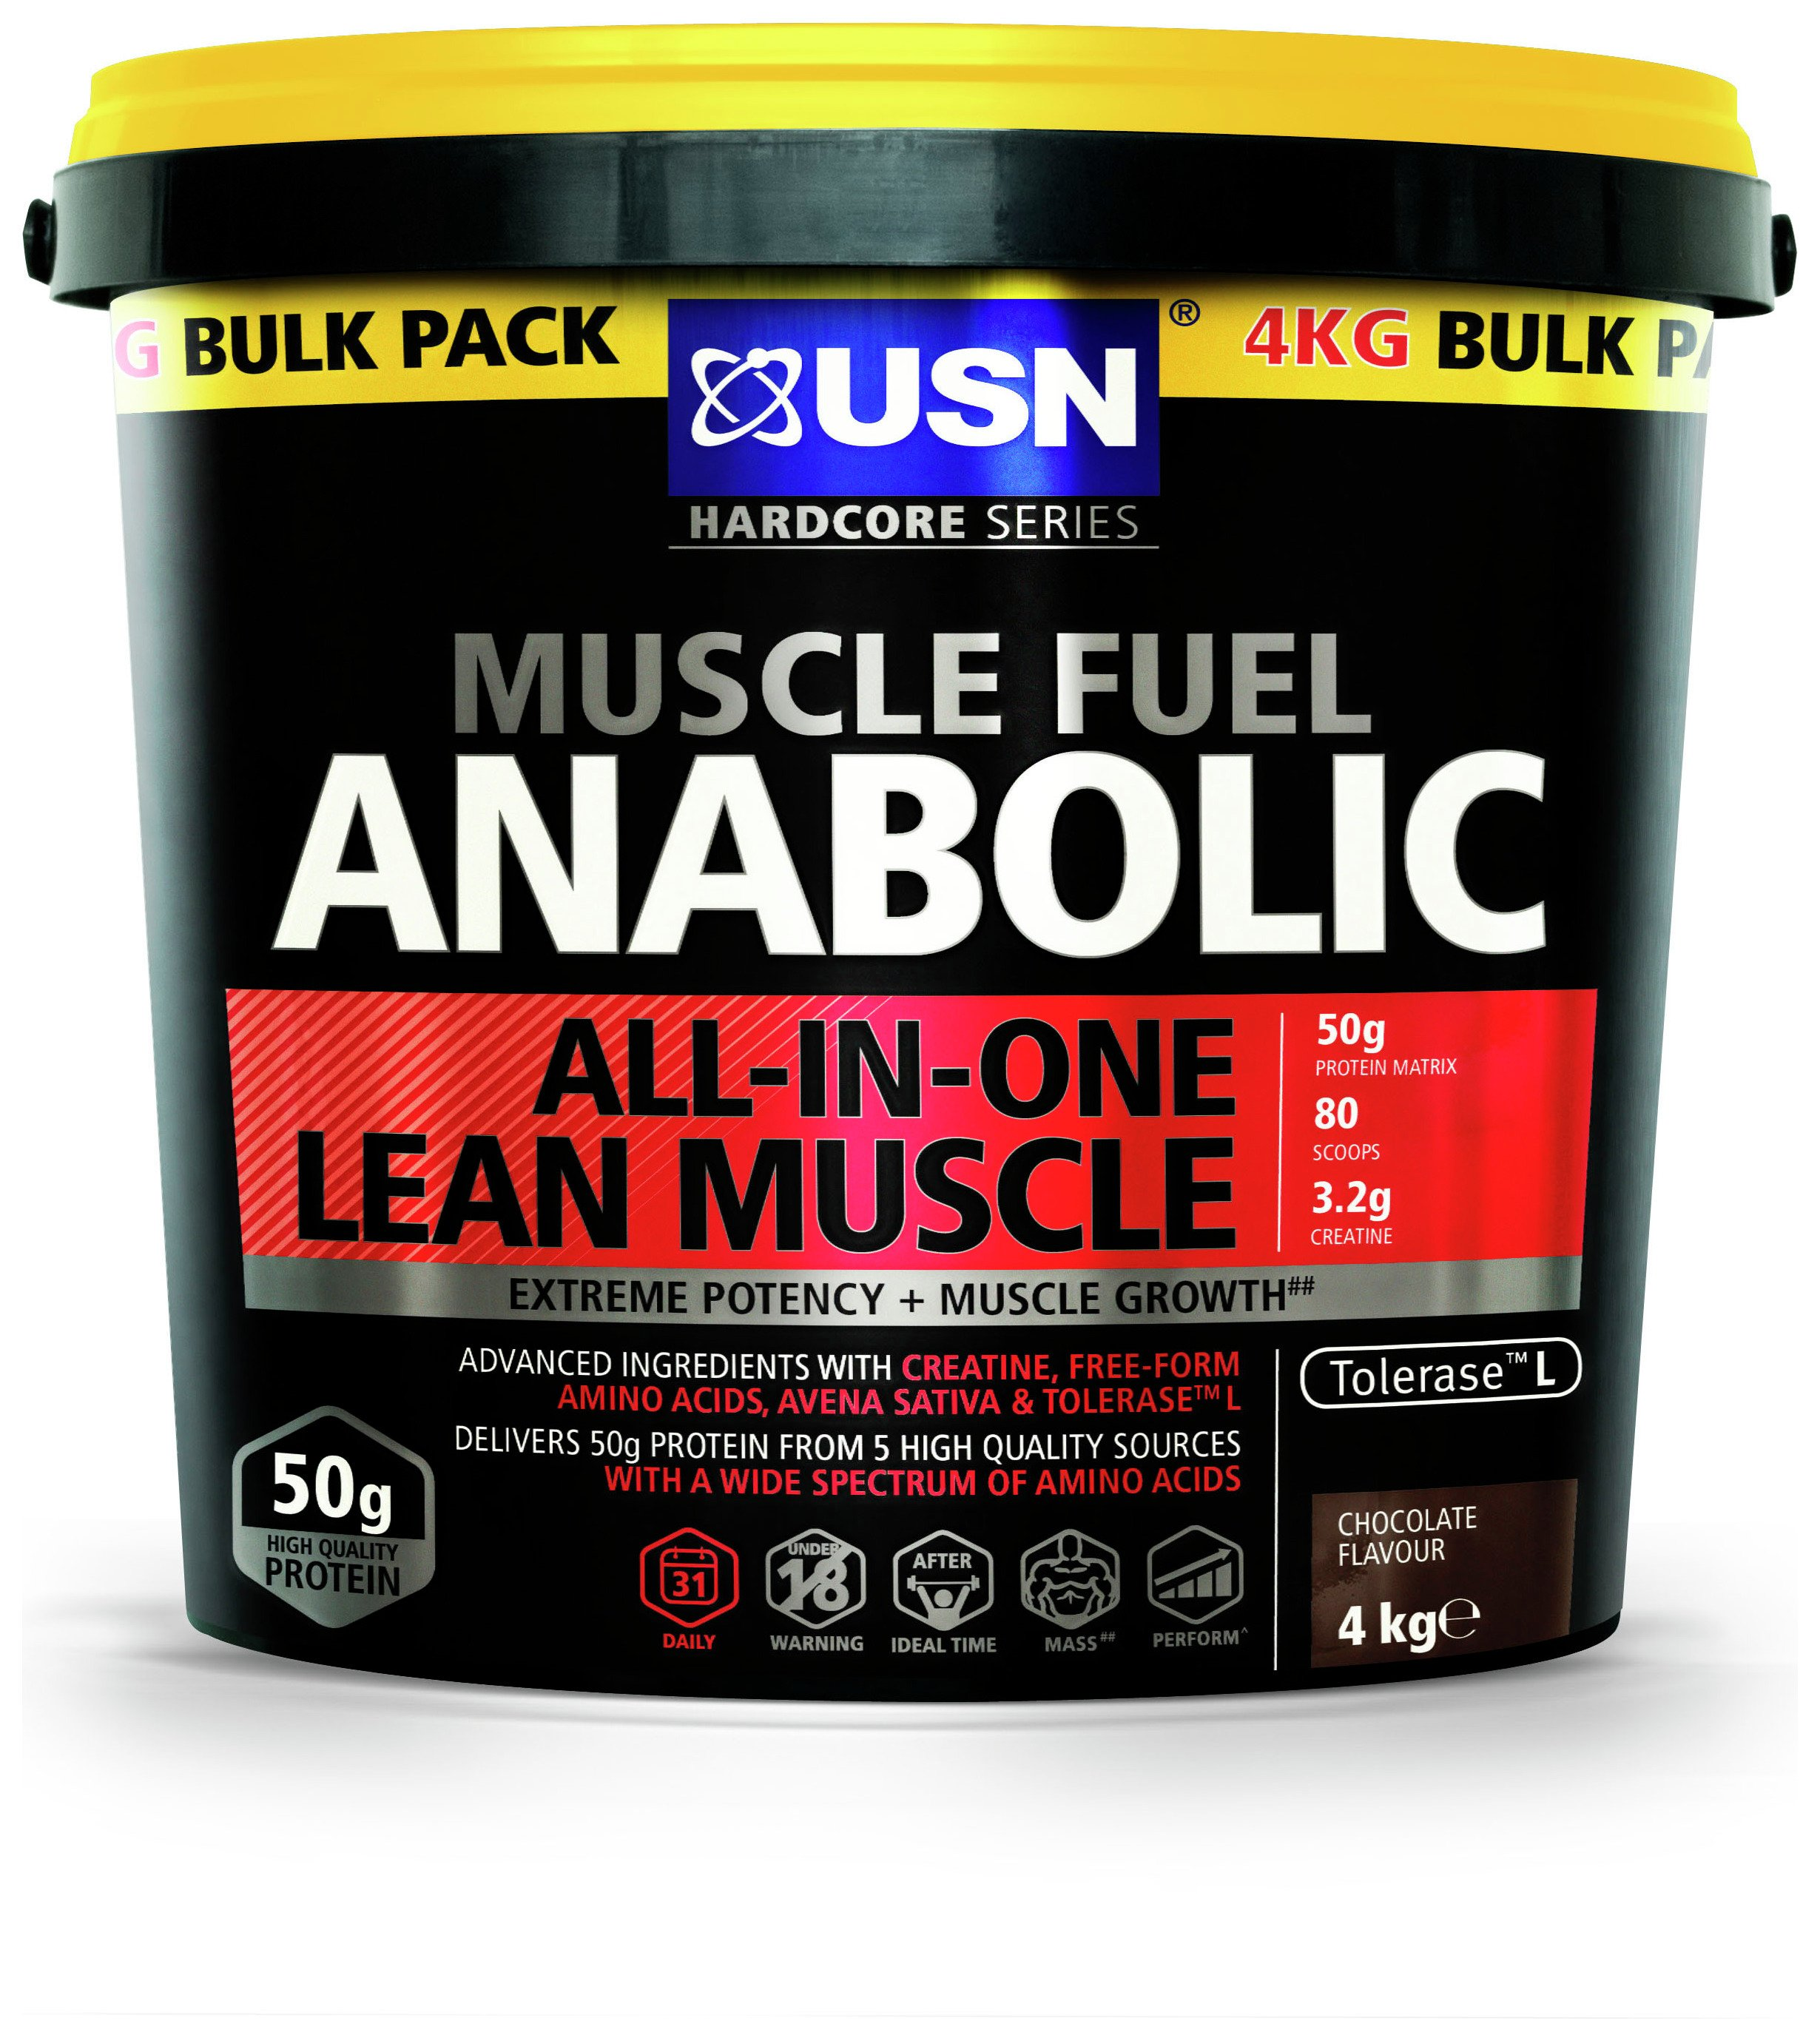 usn anabolic muscle fuel calories